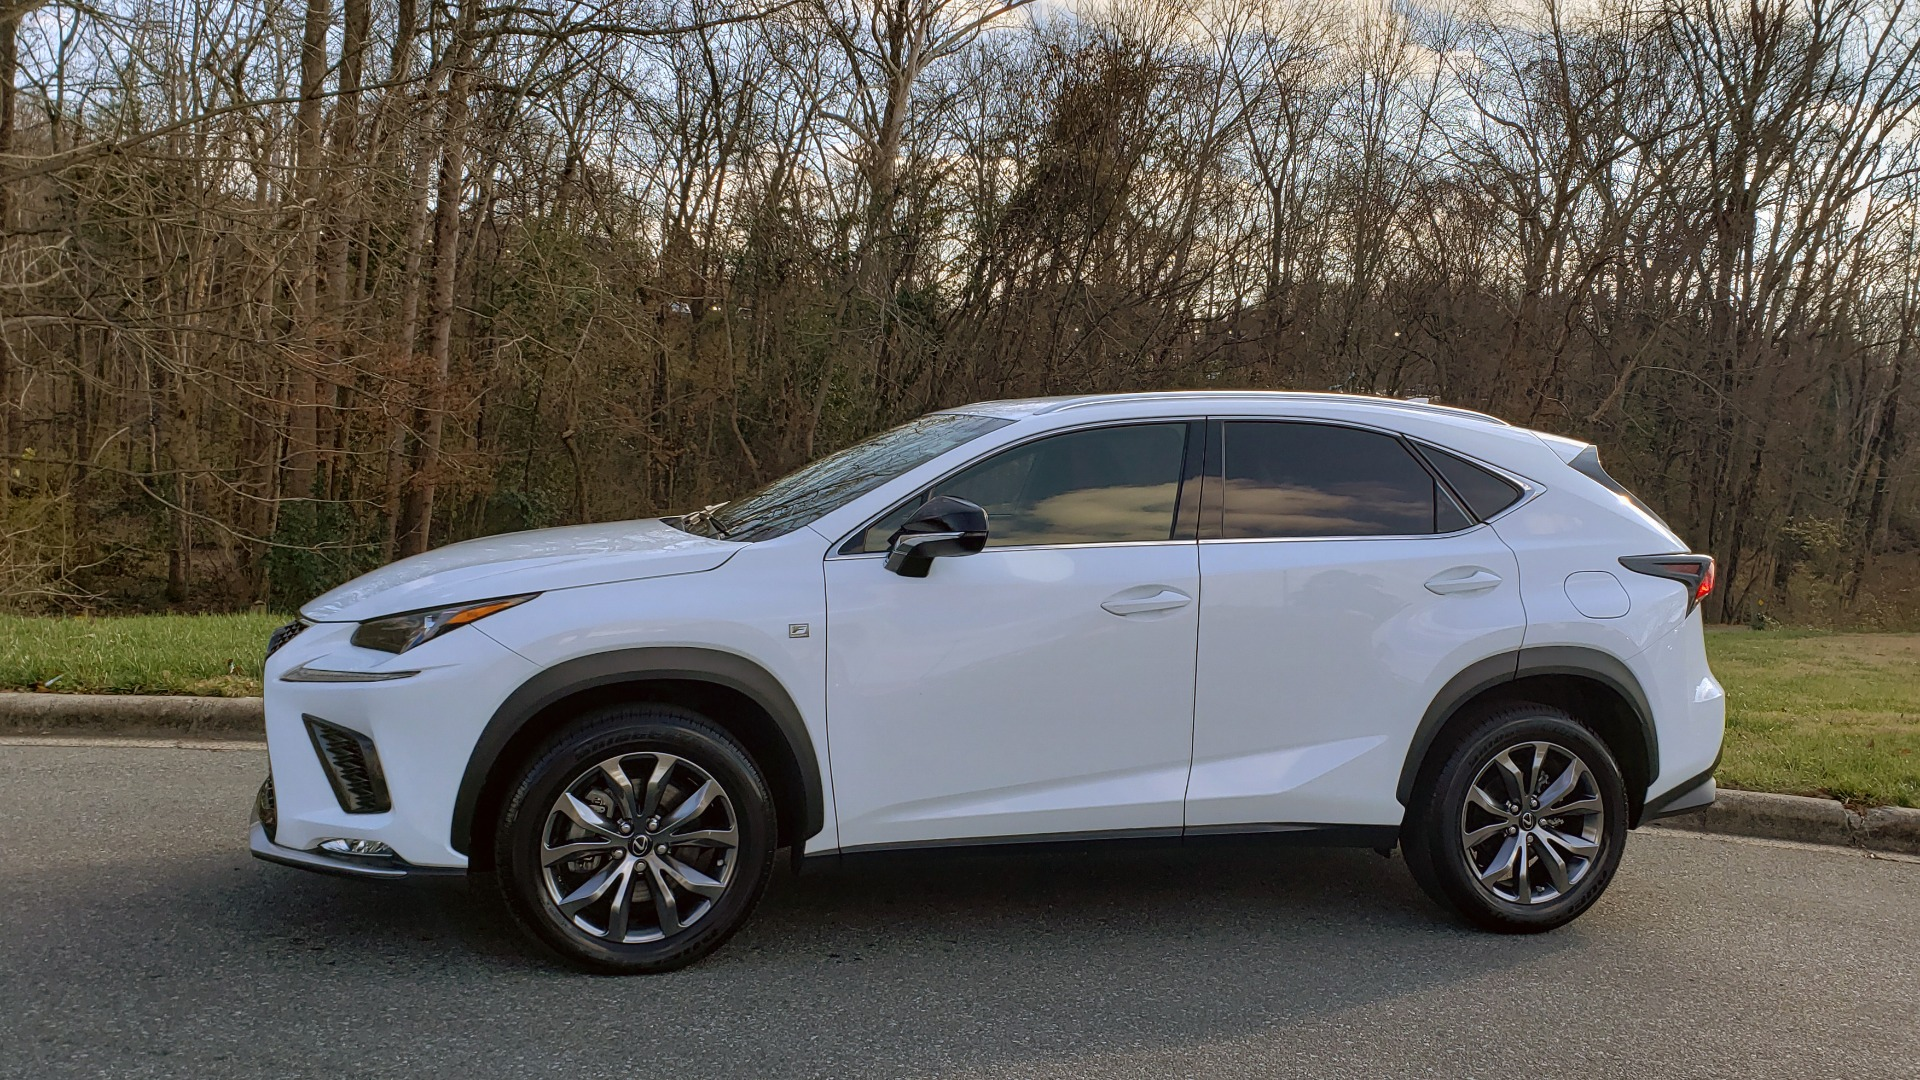 Used 2019 Lexus NX 300 F-SPORT / 2.0L TURBO / LEATHER / 18IN WHEELS / REARVIEW for sale $31,195 at Formula Imports in Charlotte NC 28227 2